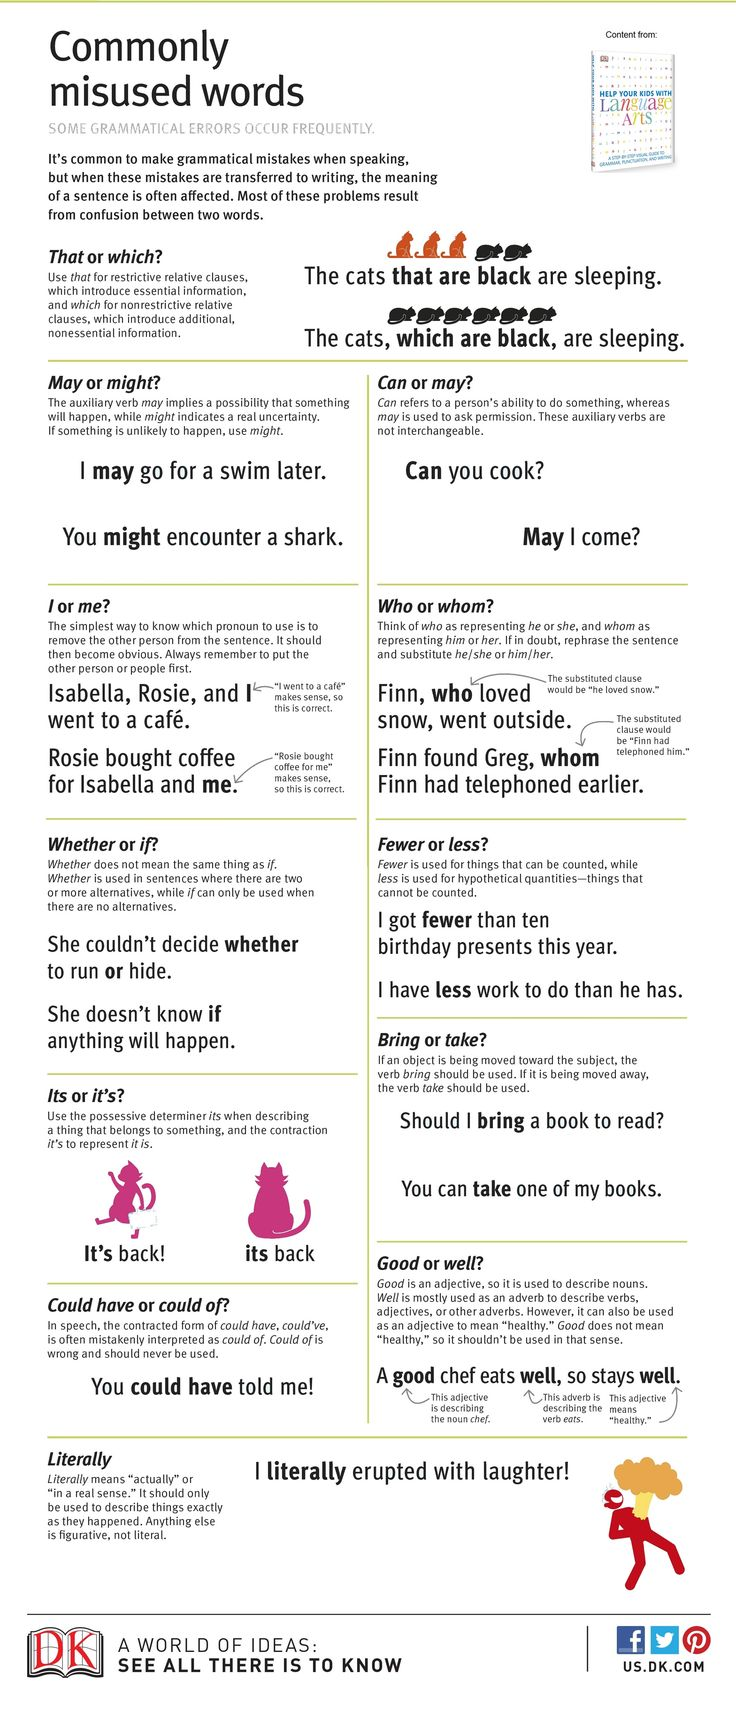 Grammar: Commonly Misused Words. Great for non-native English speakers like me. I do these kind of mistakes frequently, but I do get better for every day. :)